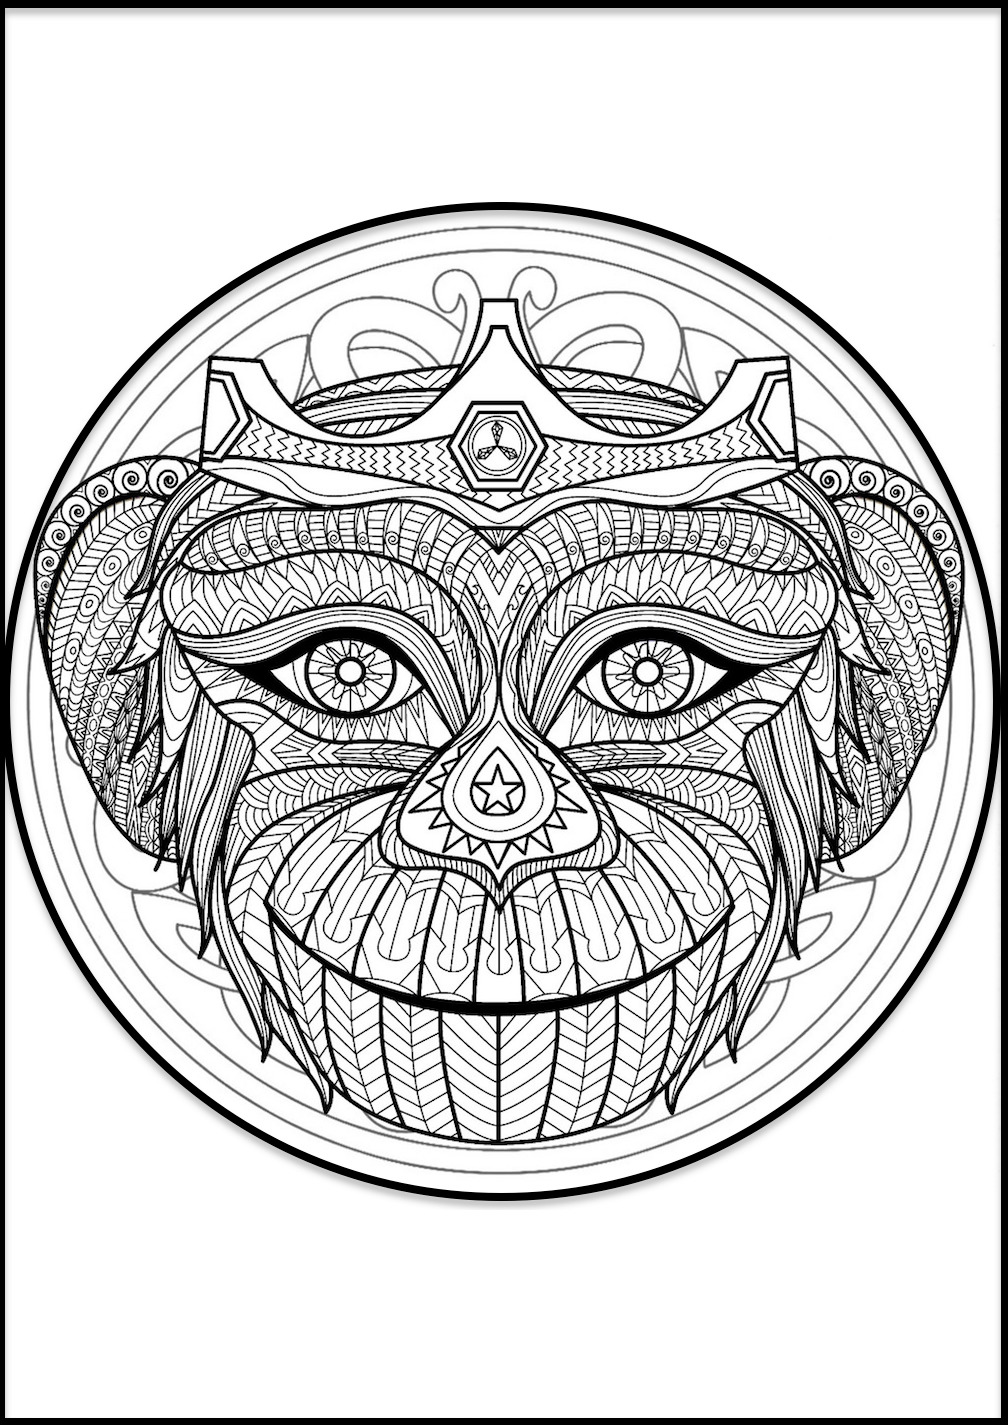 coloring mandala free clipart of a black and white adult coloring page mandala coloring